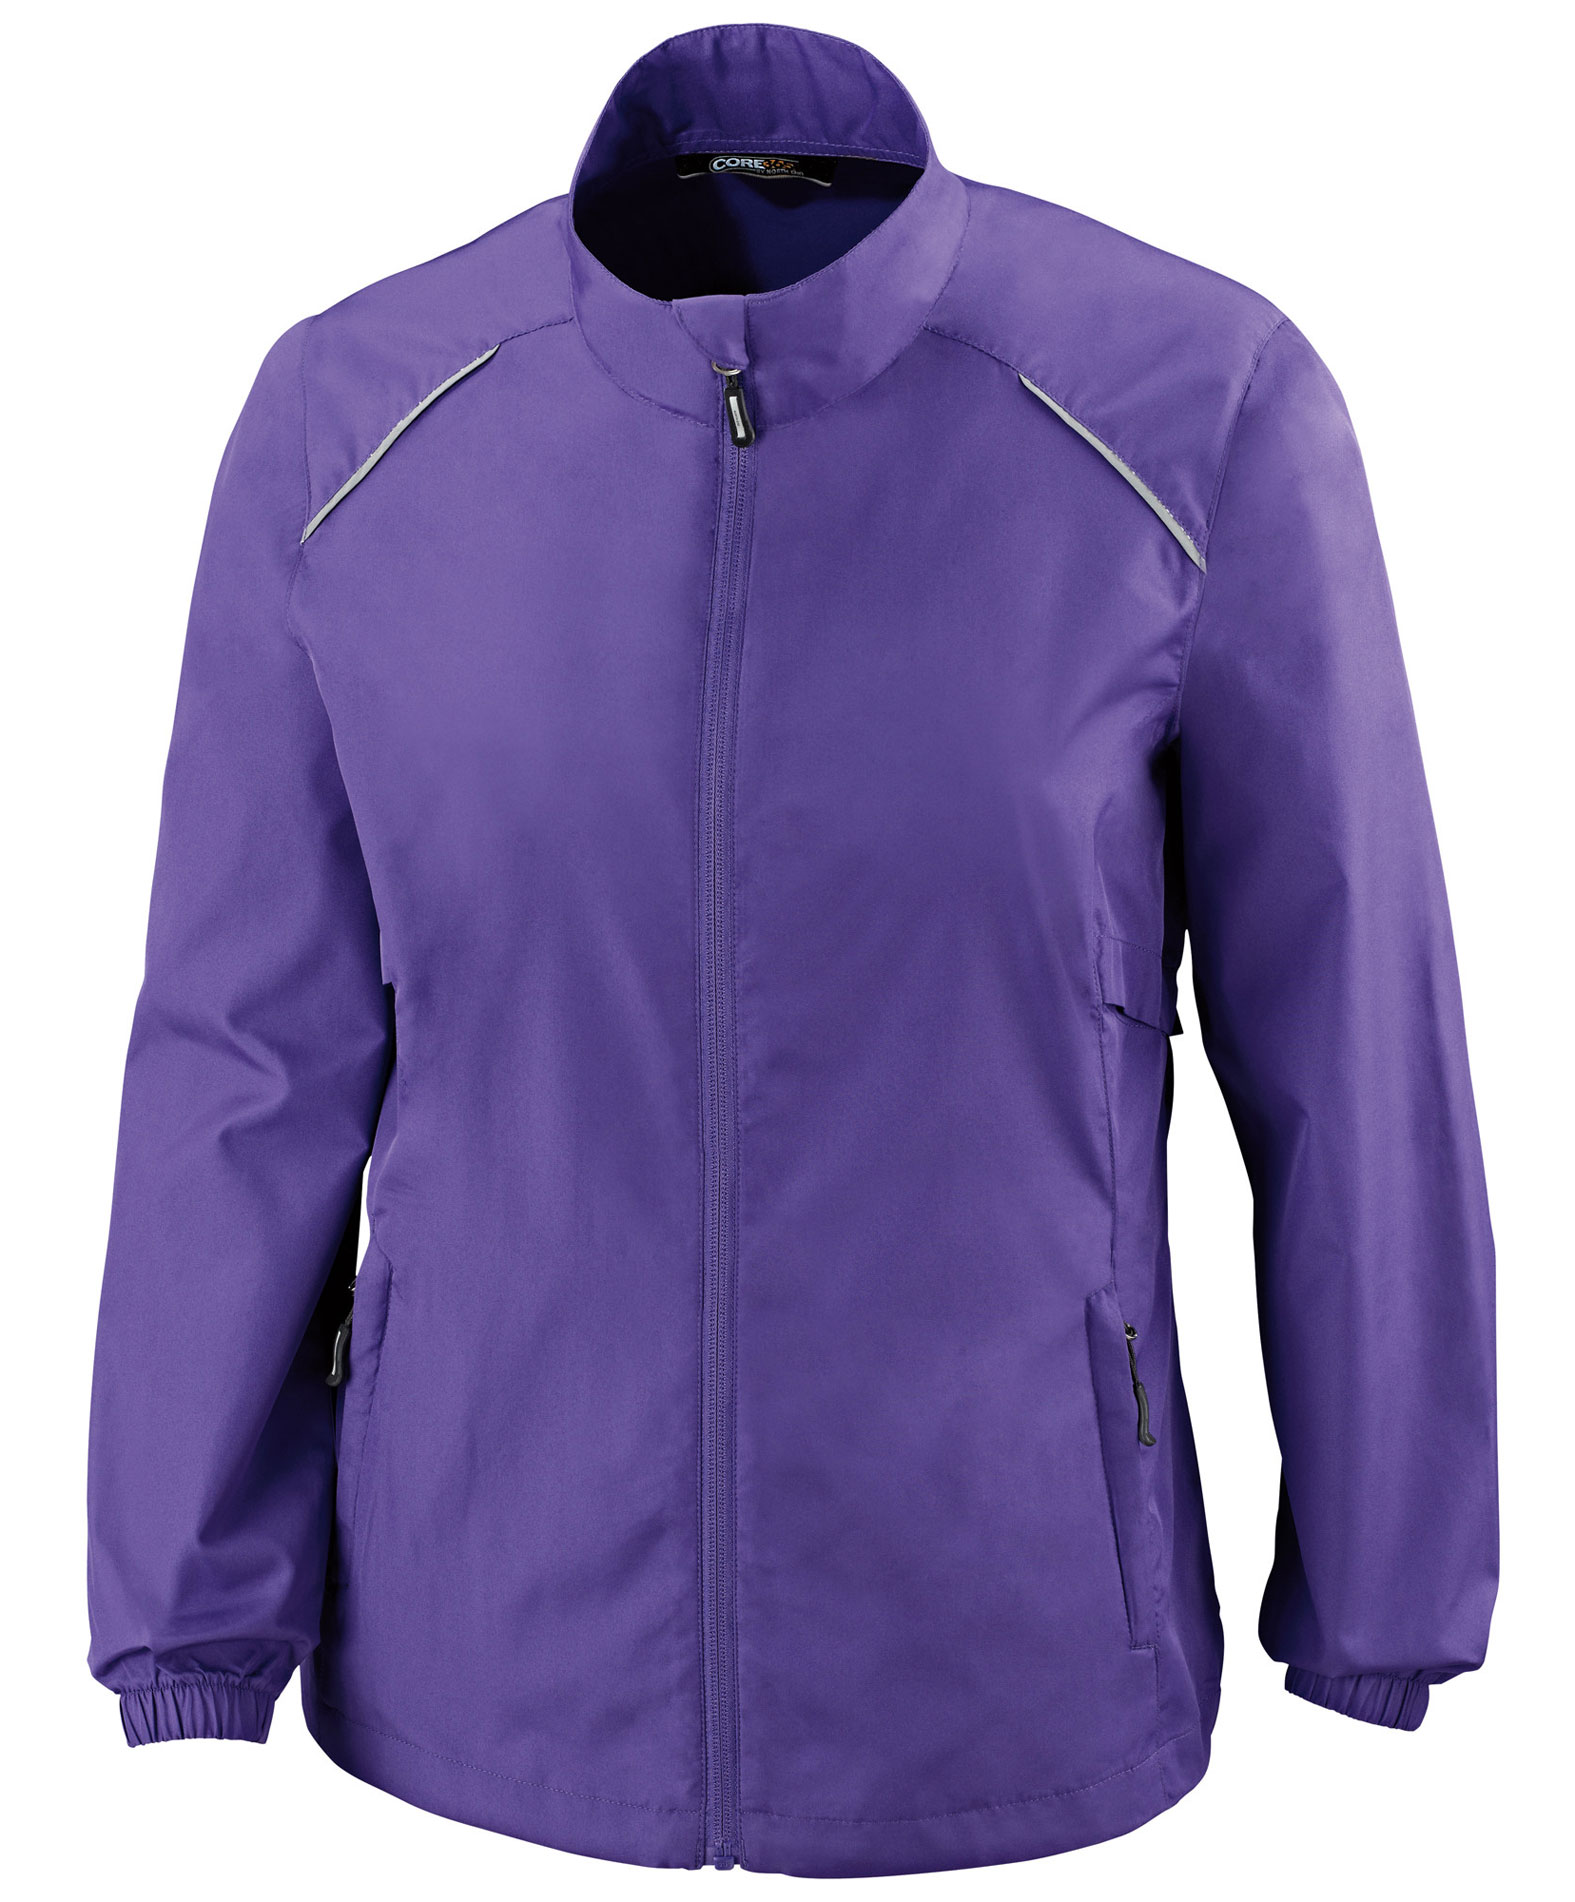 Ladies CORE365� Unlined Lightweight Jacket